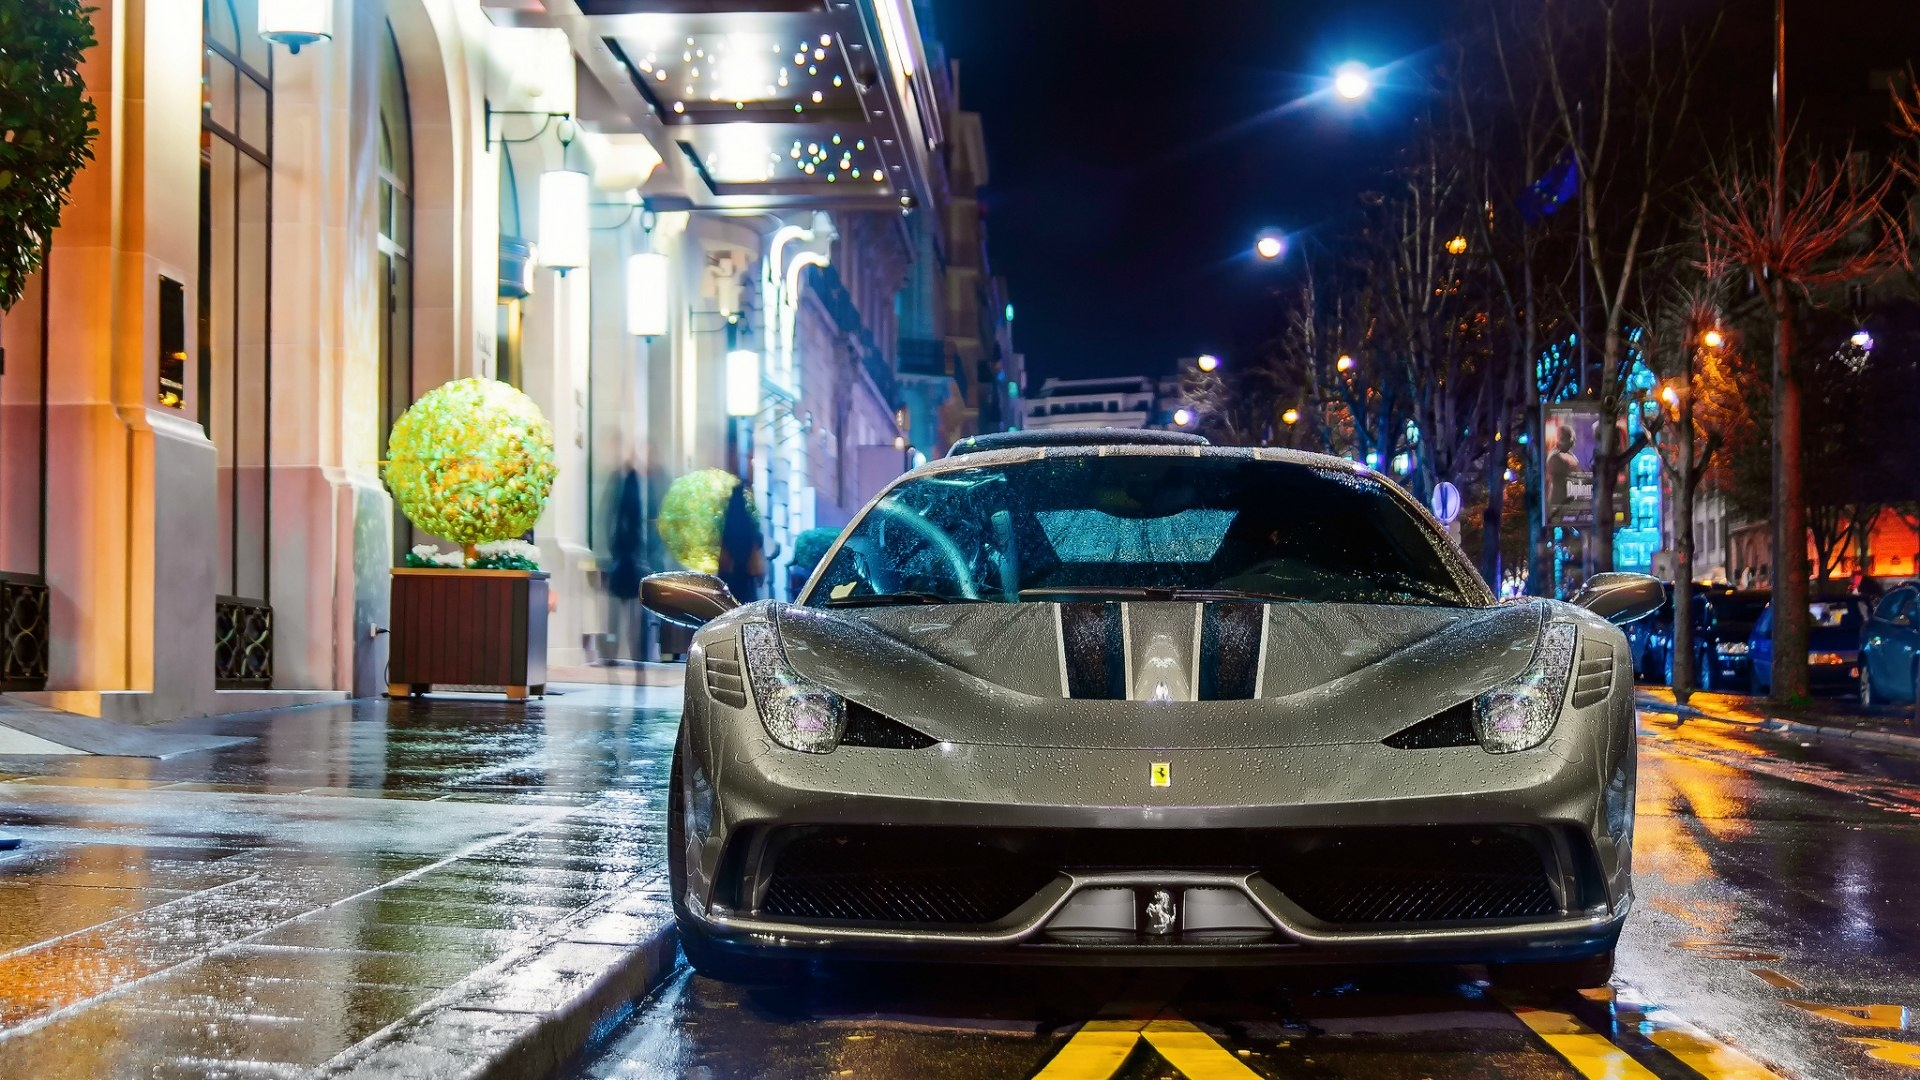 Hd Wallpaper Cars 1080p 56 Fondos De Pantalla De Ferrari Wallpaperrs Hd De Coches